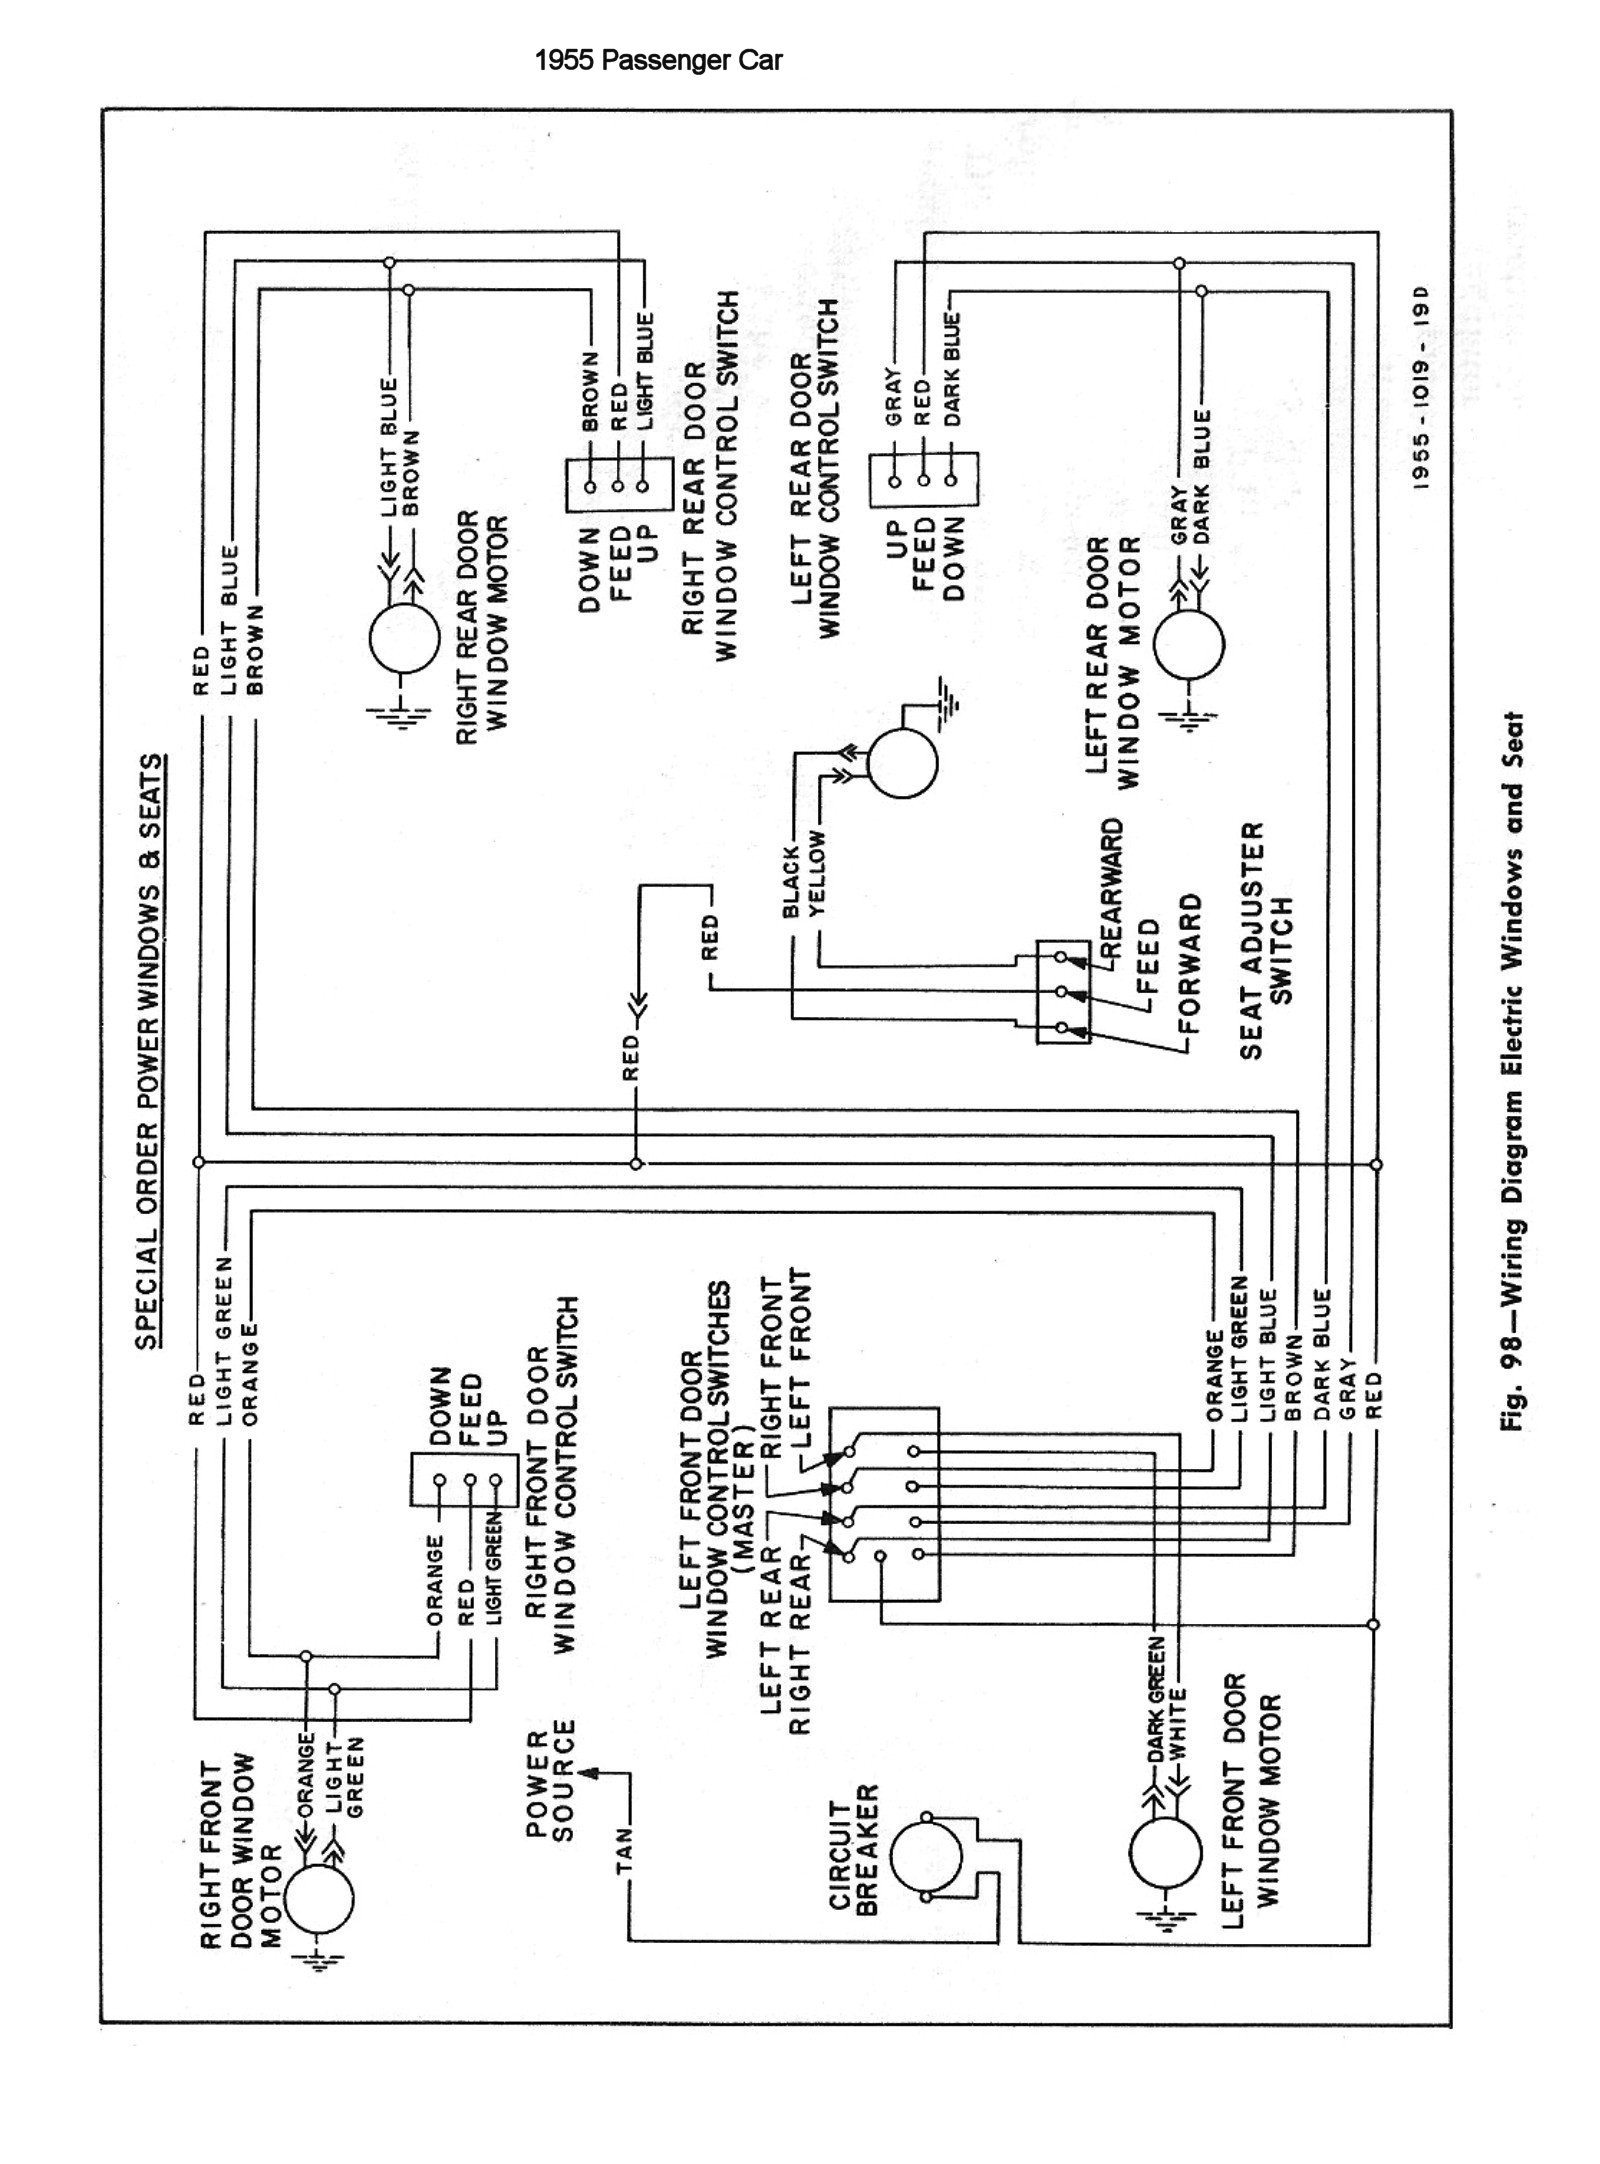 [WRG-7511] C3100 Wiring Diagram